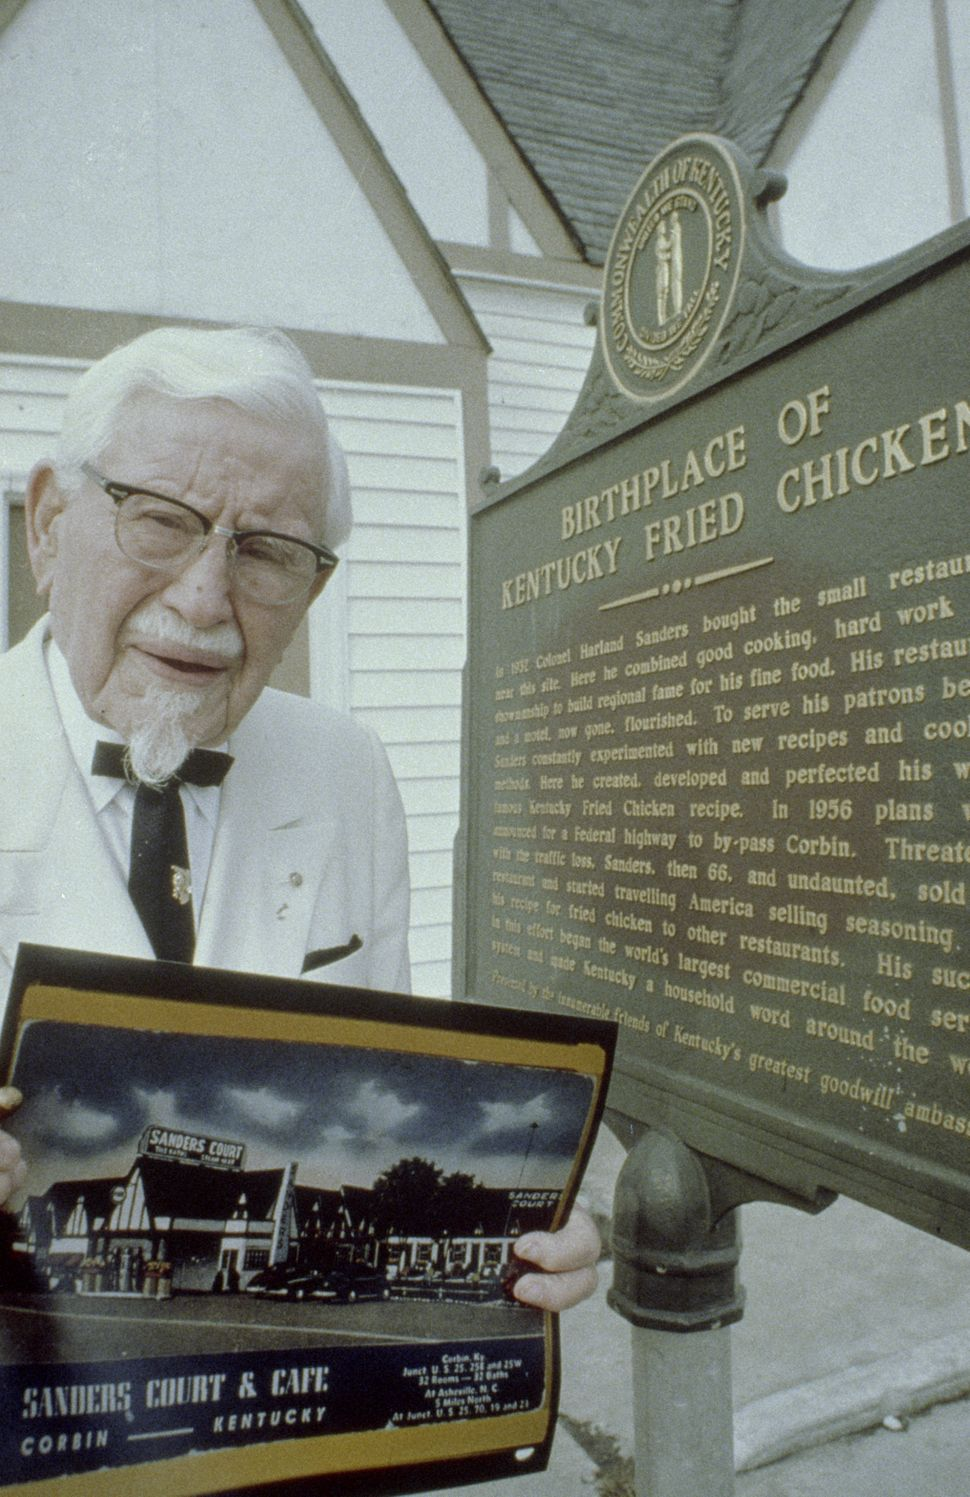 """Colonel Sanders proudly displays photo of Sanders Café next to """"Birthplace of Kentucky Fried Chicken"""" sign (circa 1970)."""